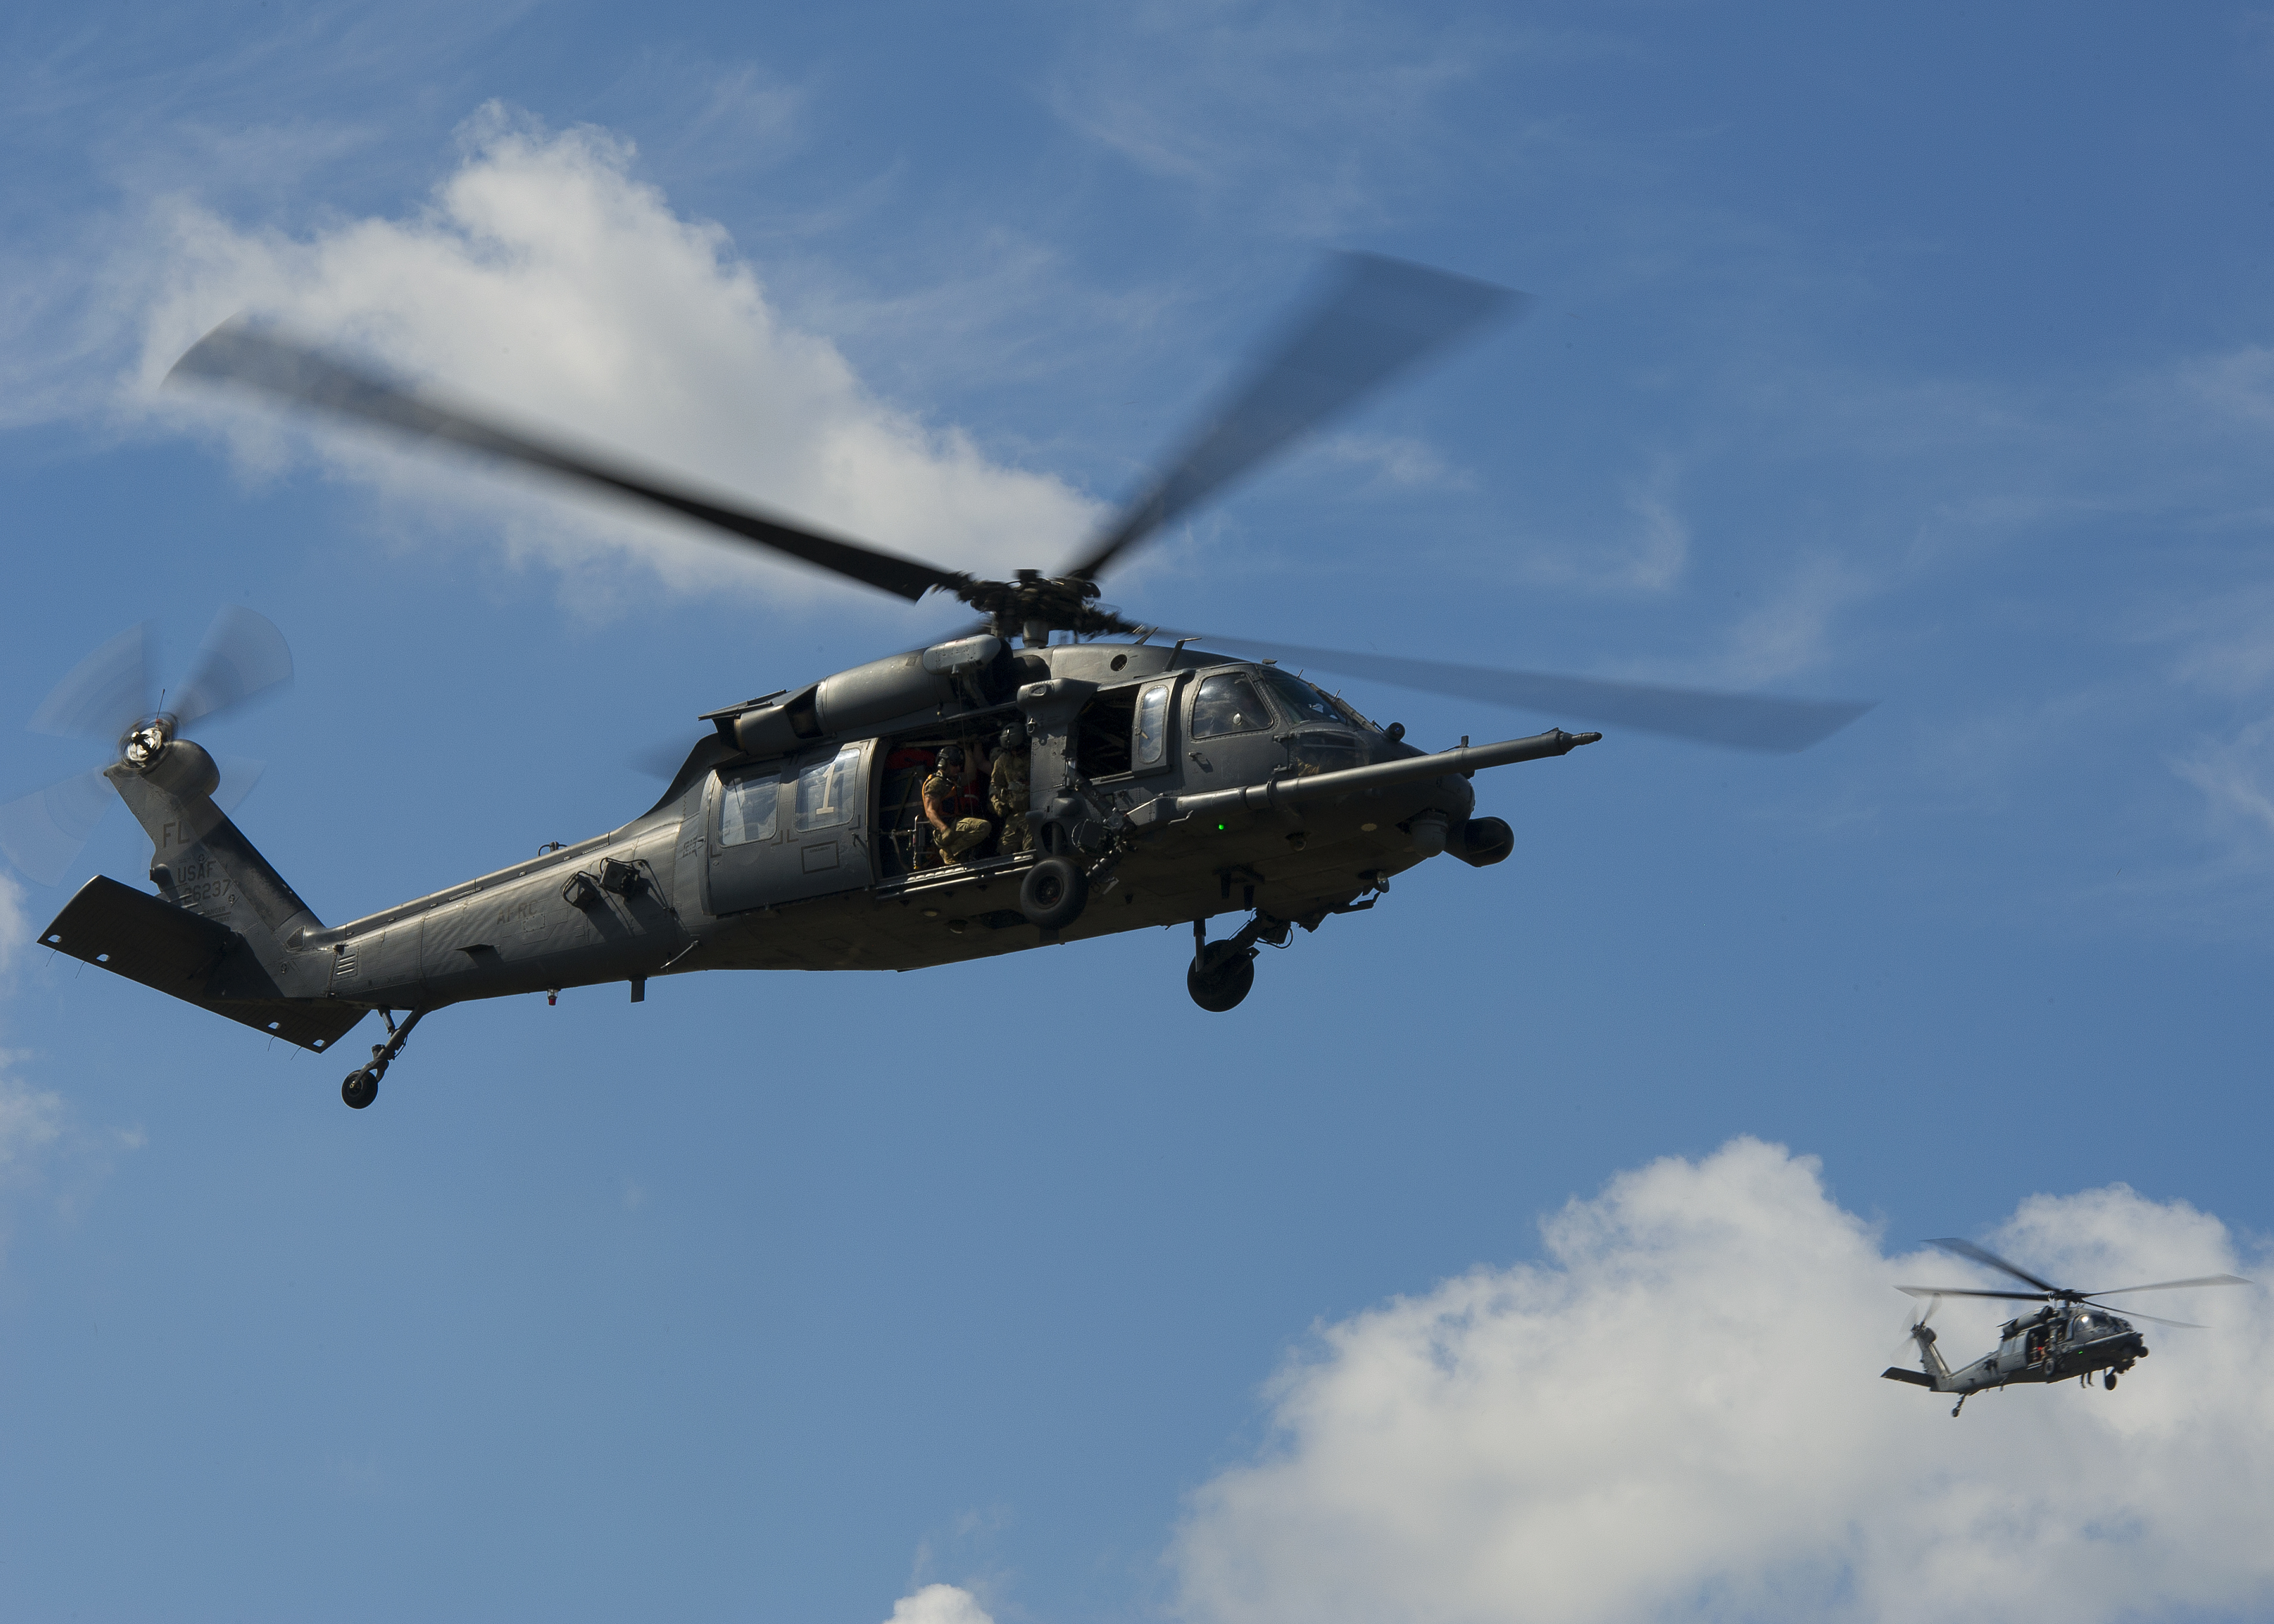 Two U.S. Air Force HH-60 Pave Hawk helicopters from the 301st Rescue Squadron, Patrick Air Force Base, Florida, performs maneuvers during a training scenario supporting pararescuemen at Guardian Centers, Perry, Georgia, October 11, 2017. (Master Sgt. Stephen D. Schester/Air Force)